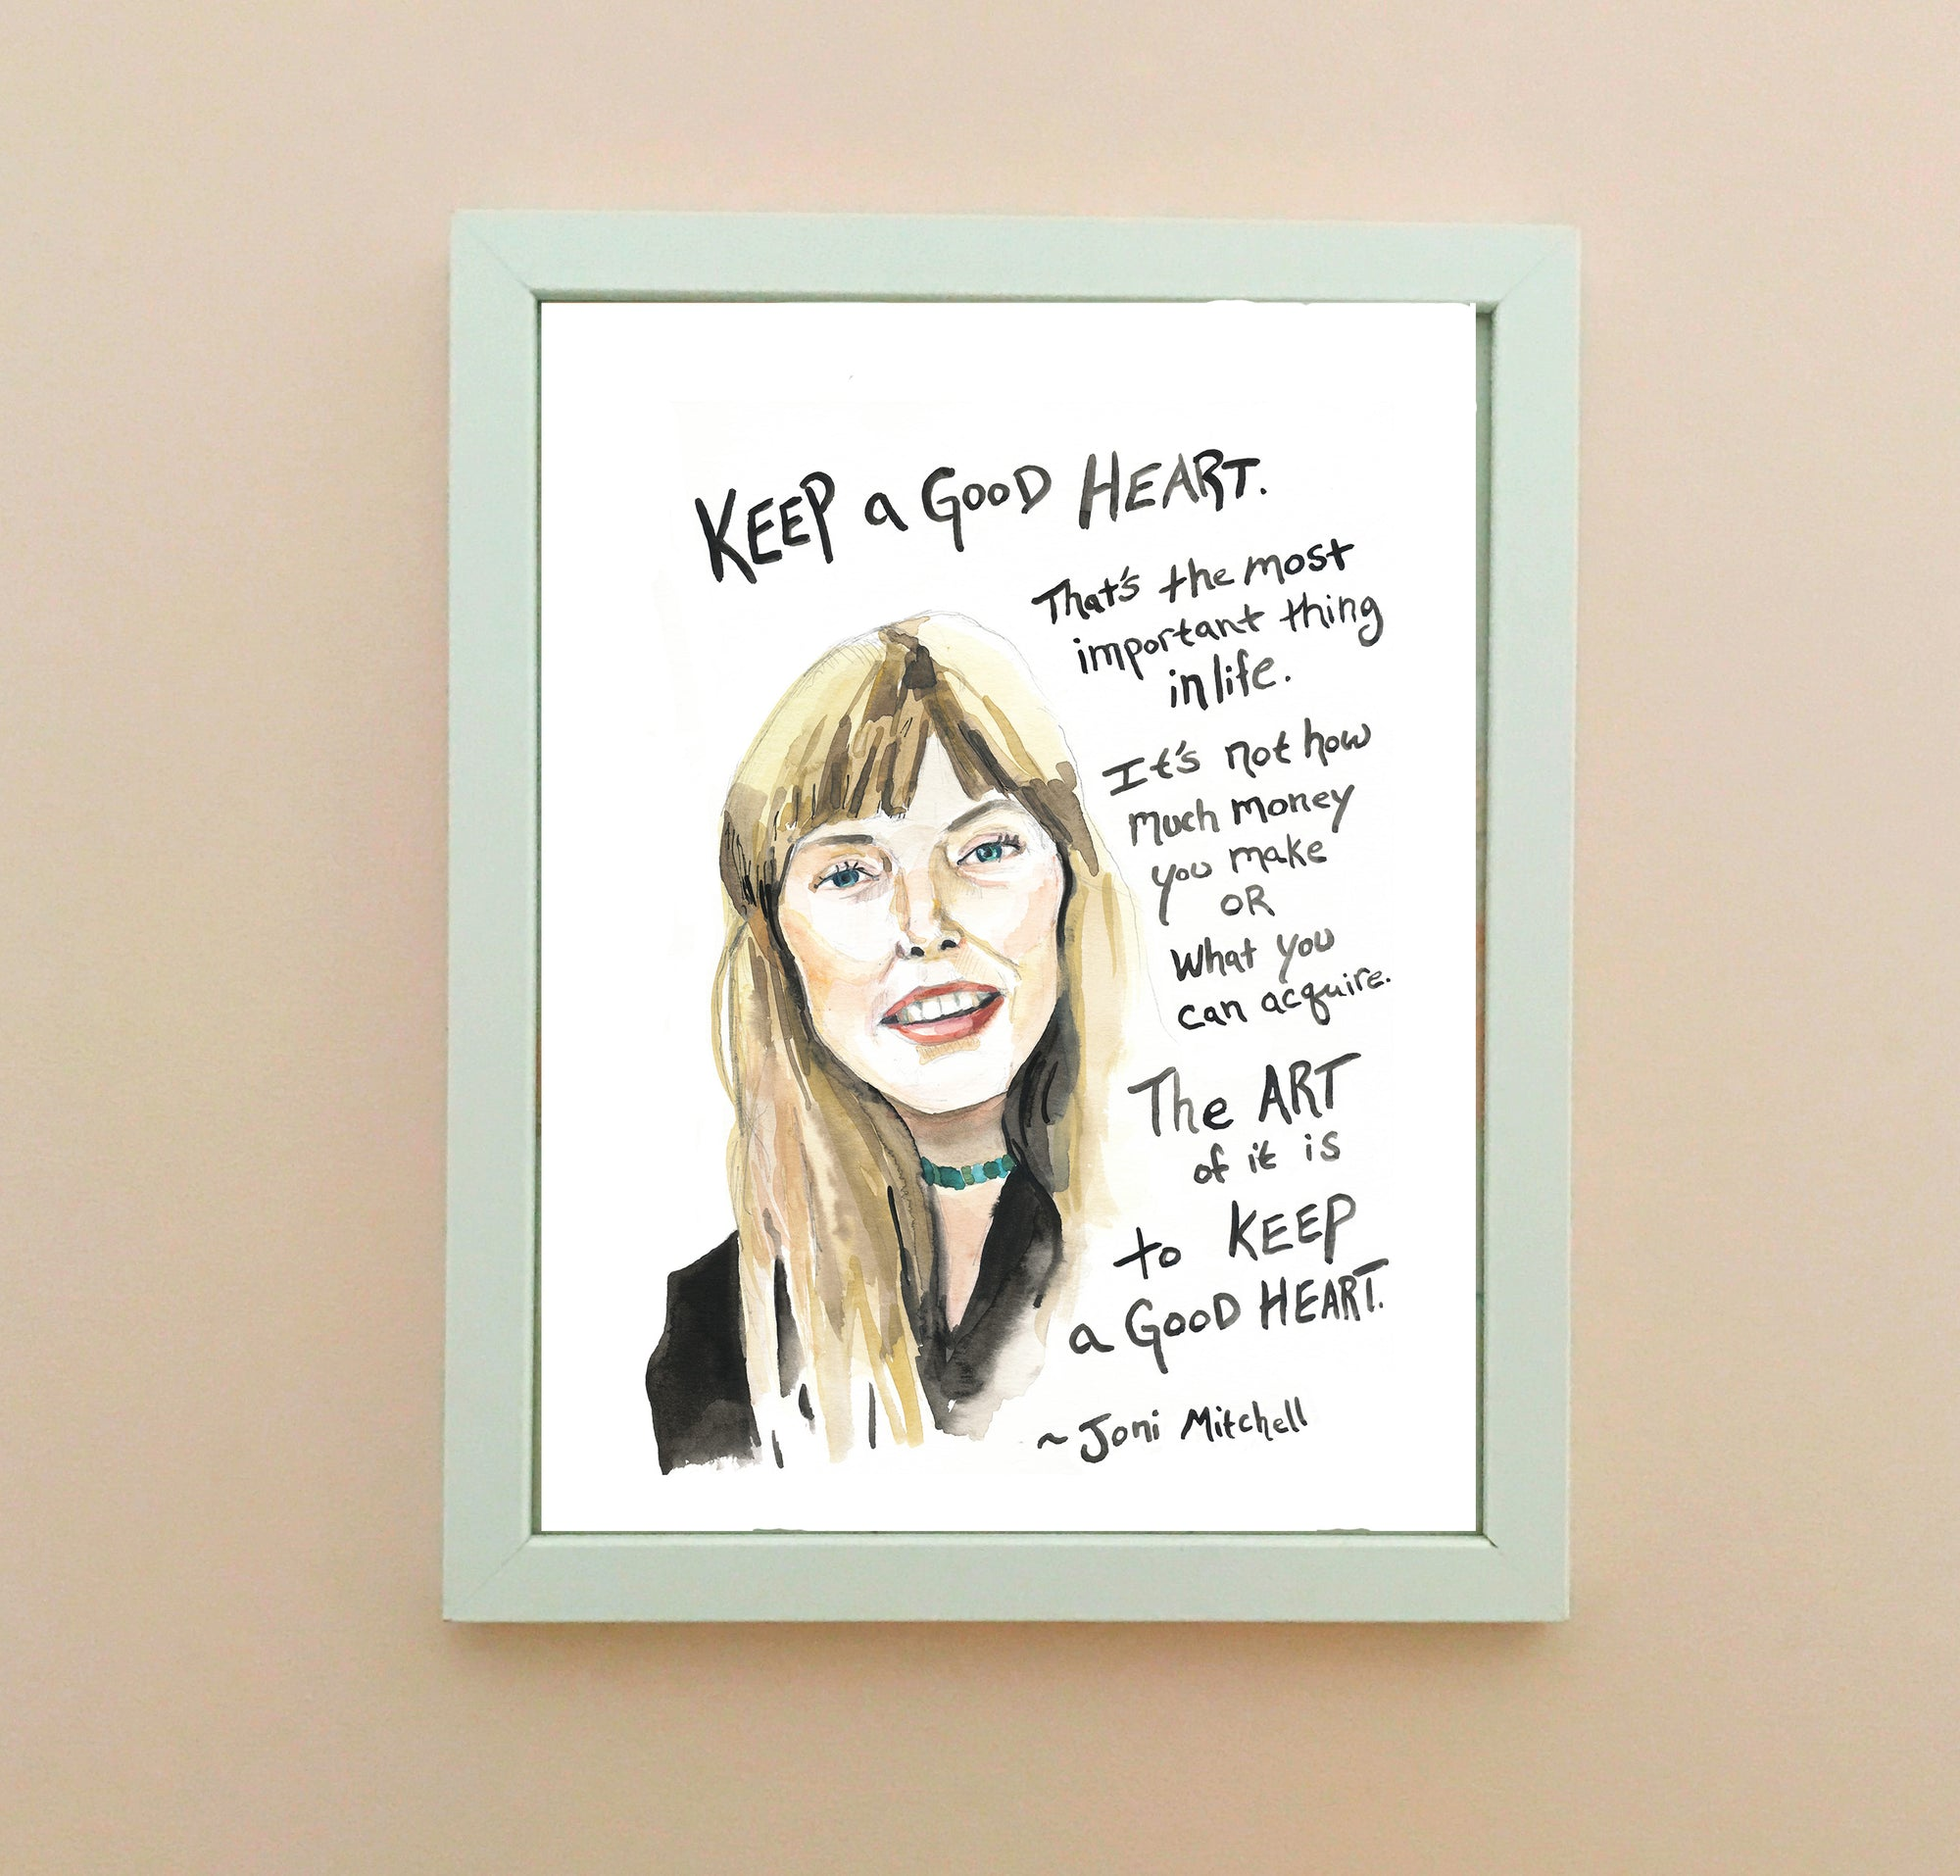 Joni Mitchell watercolor portrait with inspiring quote